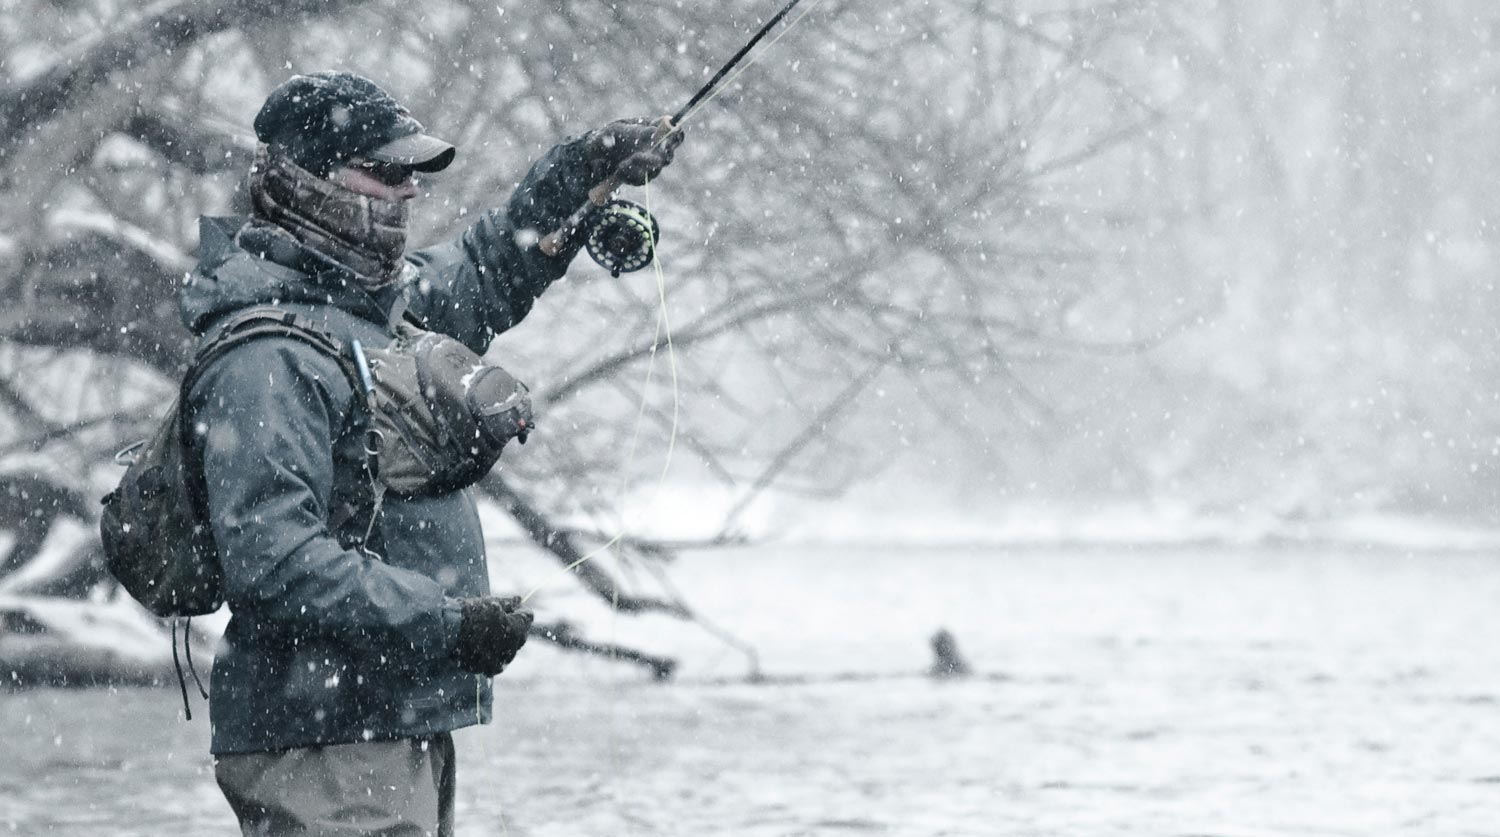 Fly Fishing in Gloves Gets Better with Time